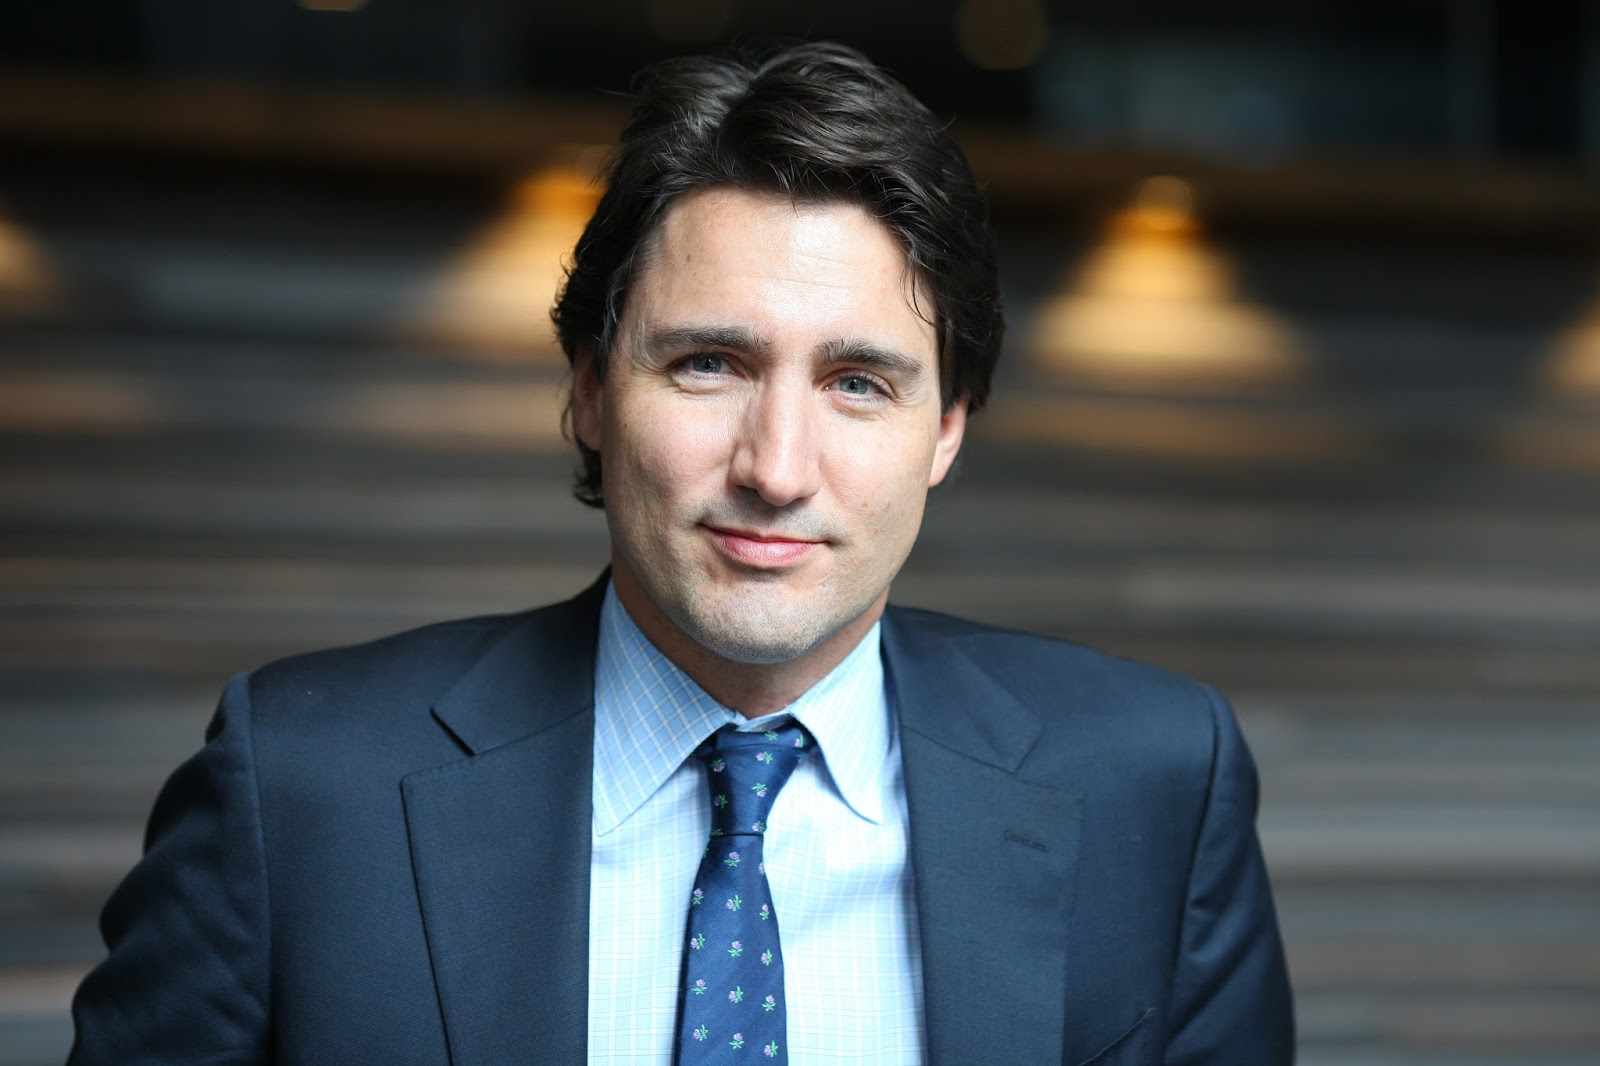 Zeeshan News Justin Trudeau HD Wallpaper And Biography